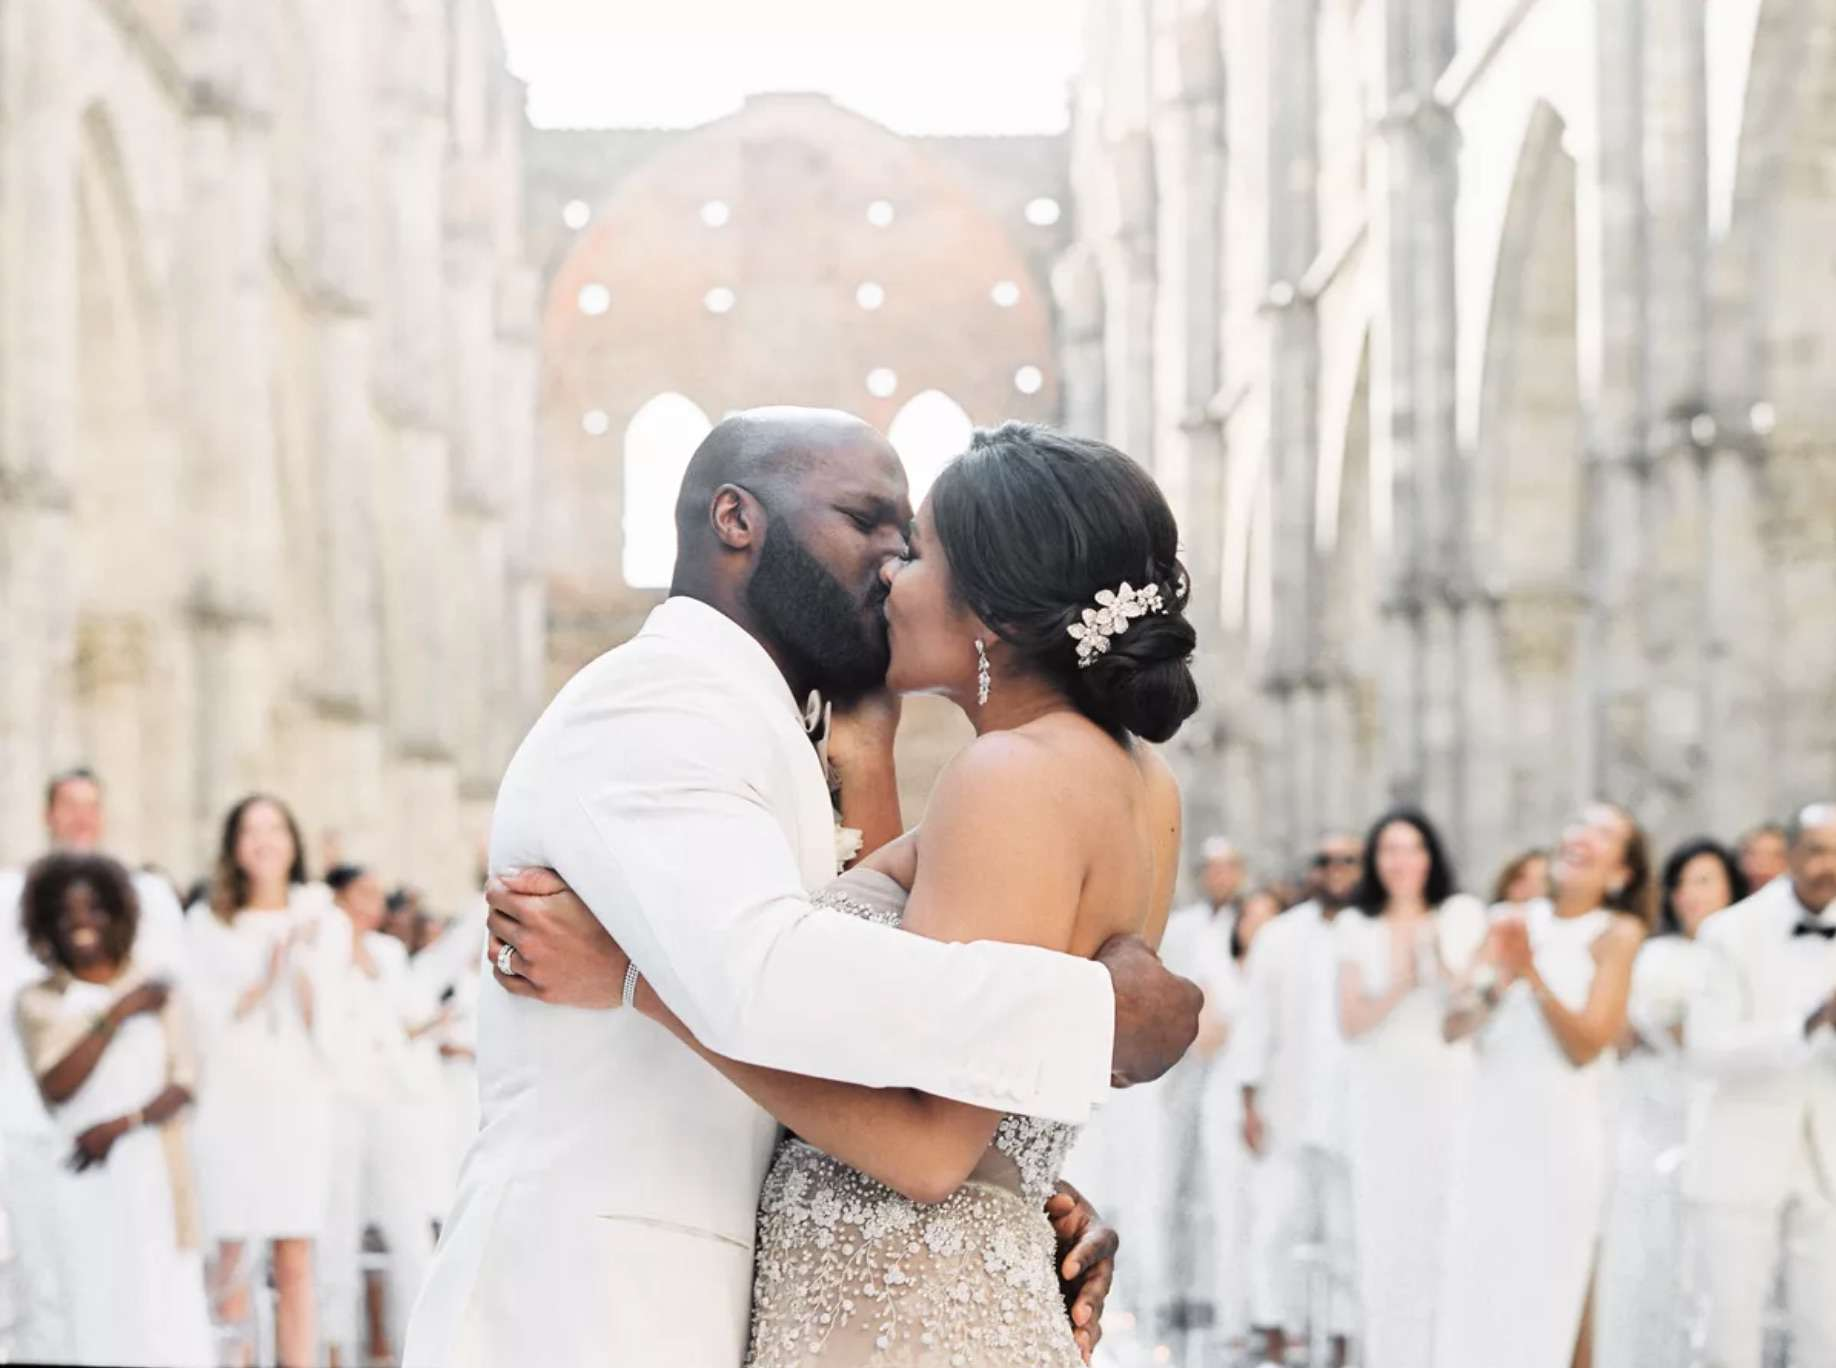 Newlyweds kissing in front of guests in white